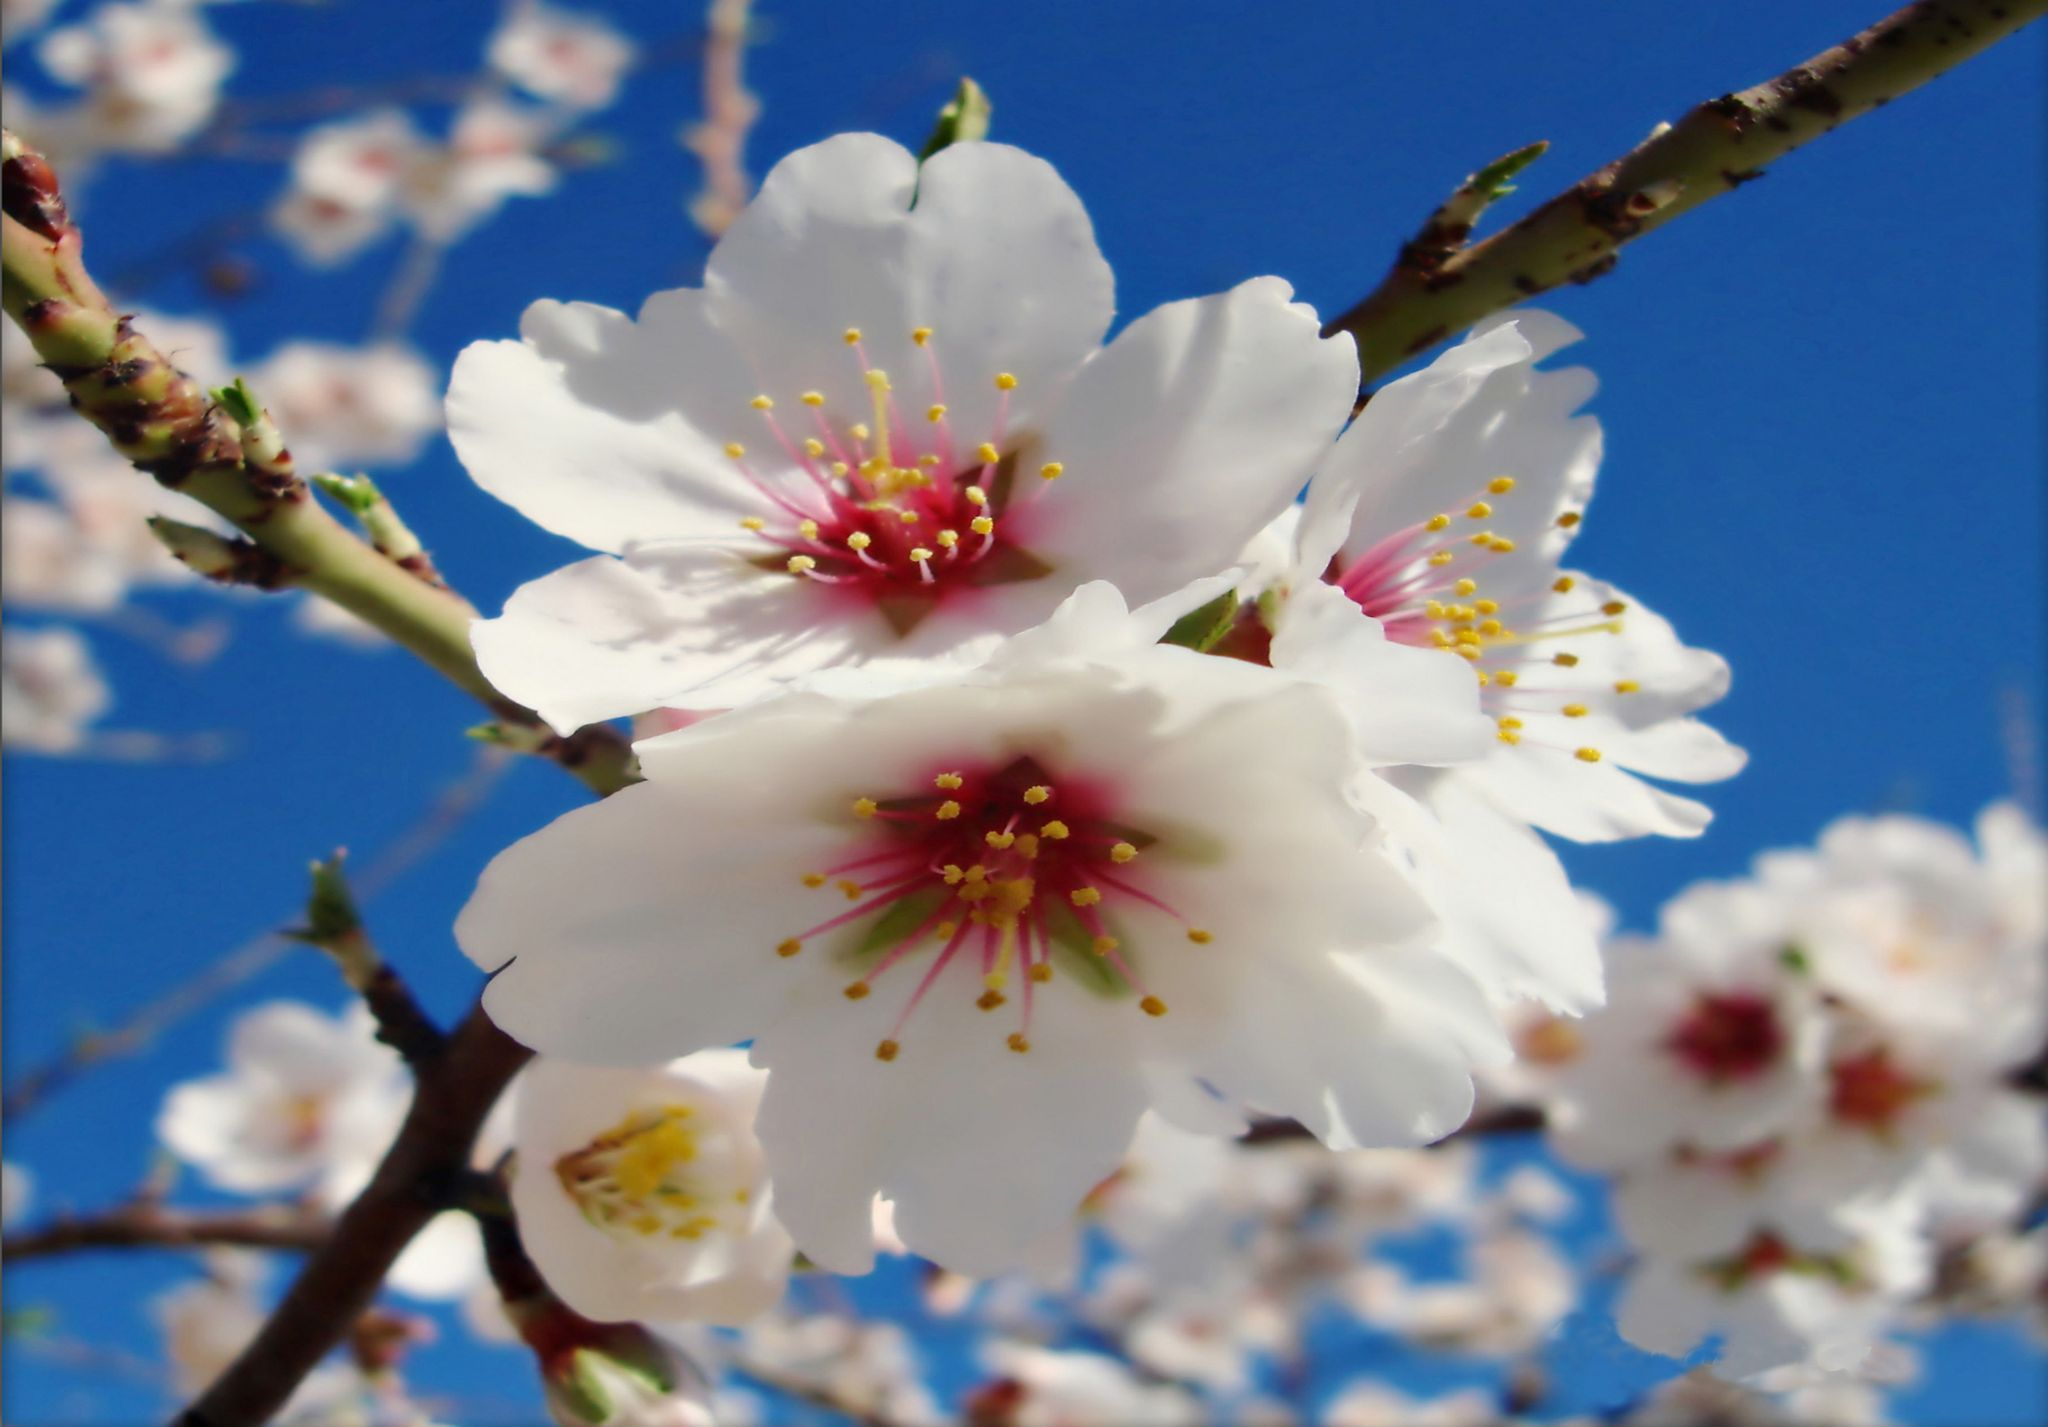 Almond blossoms by OLAYA